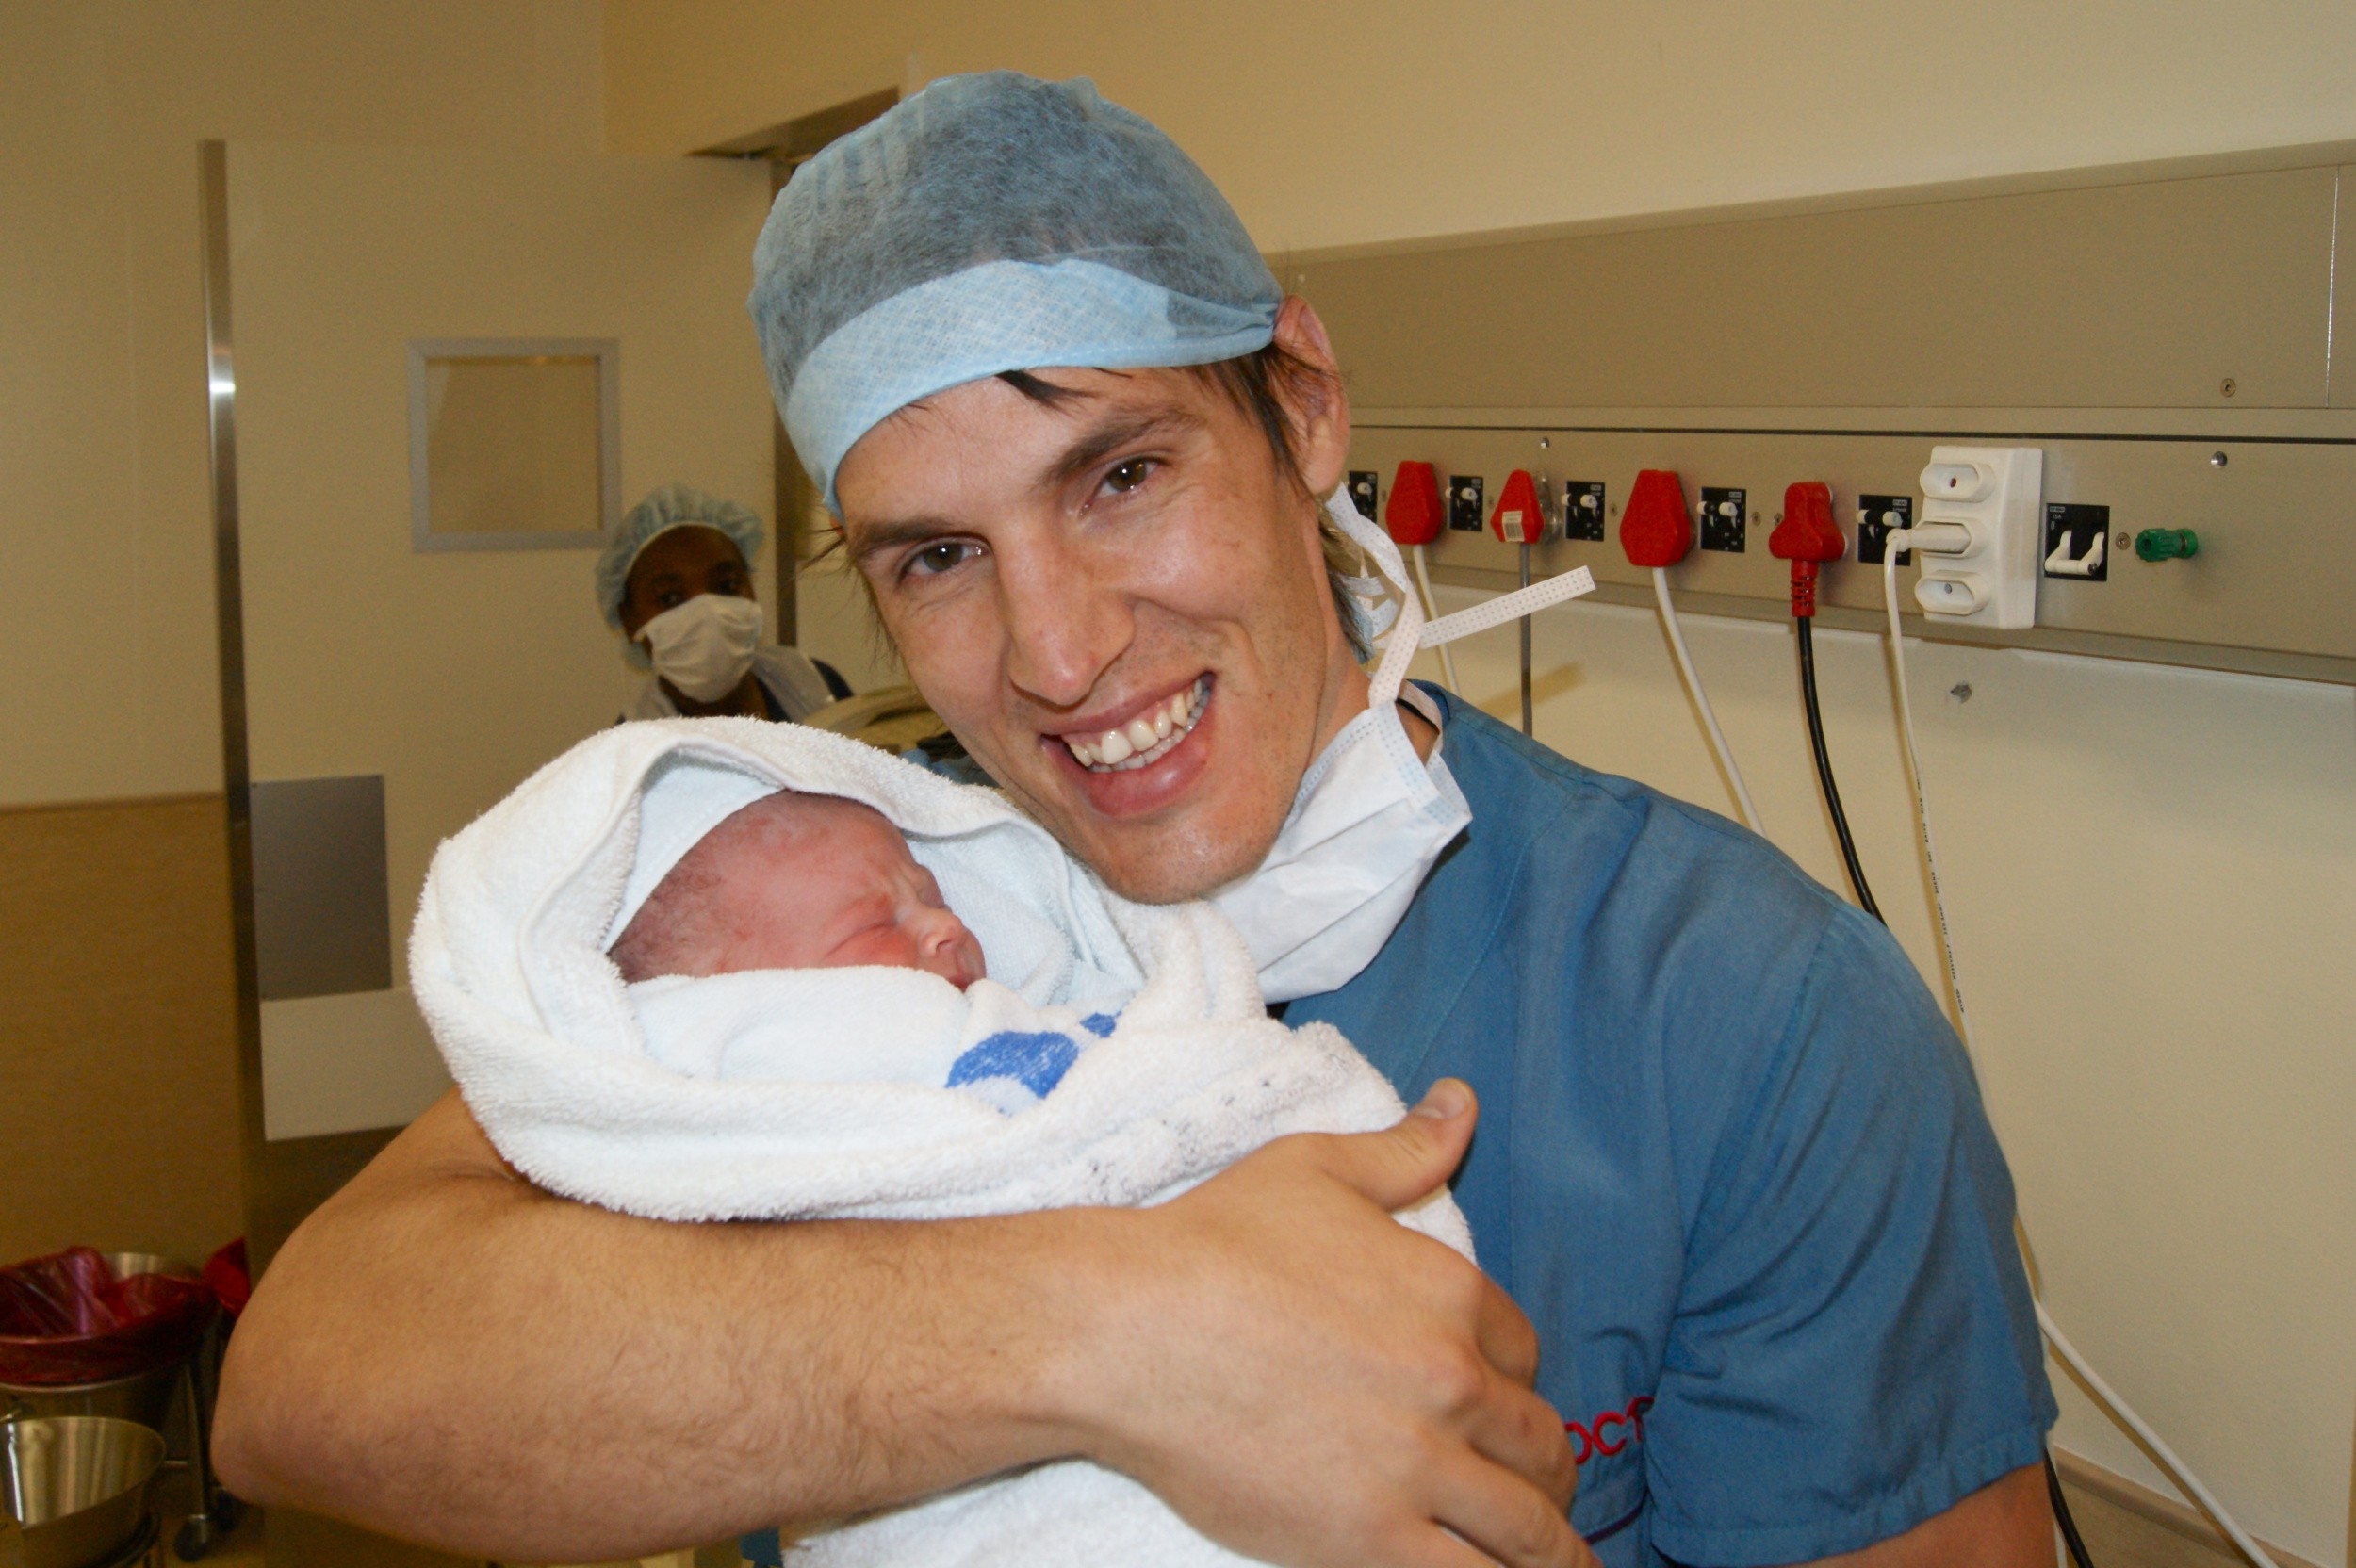 New dad holding newborn baby